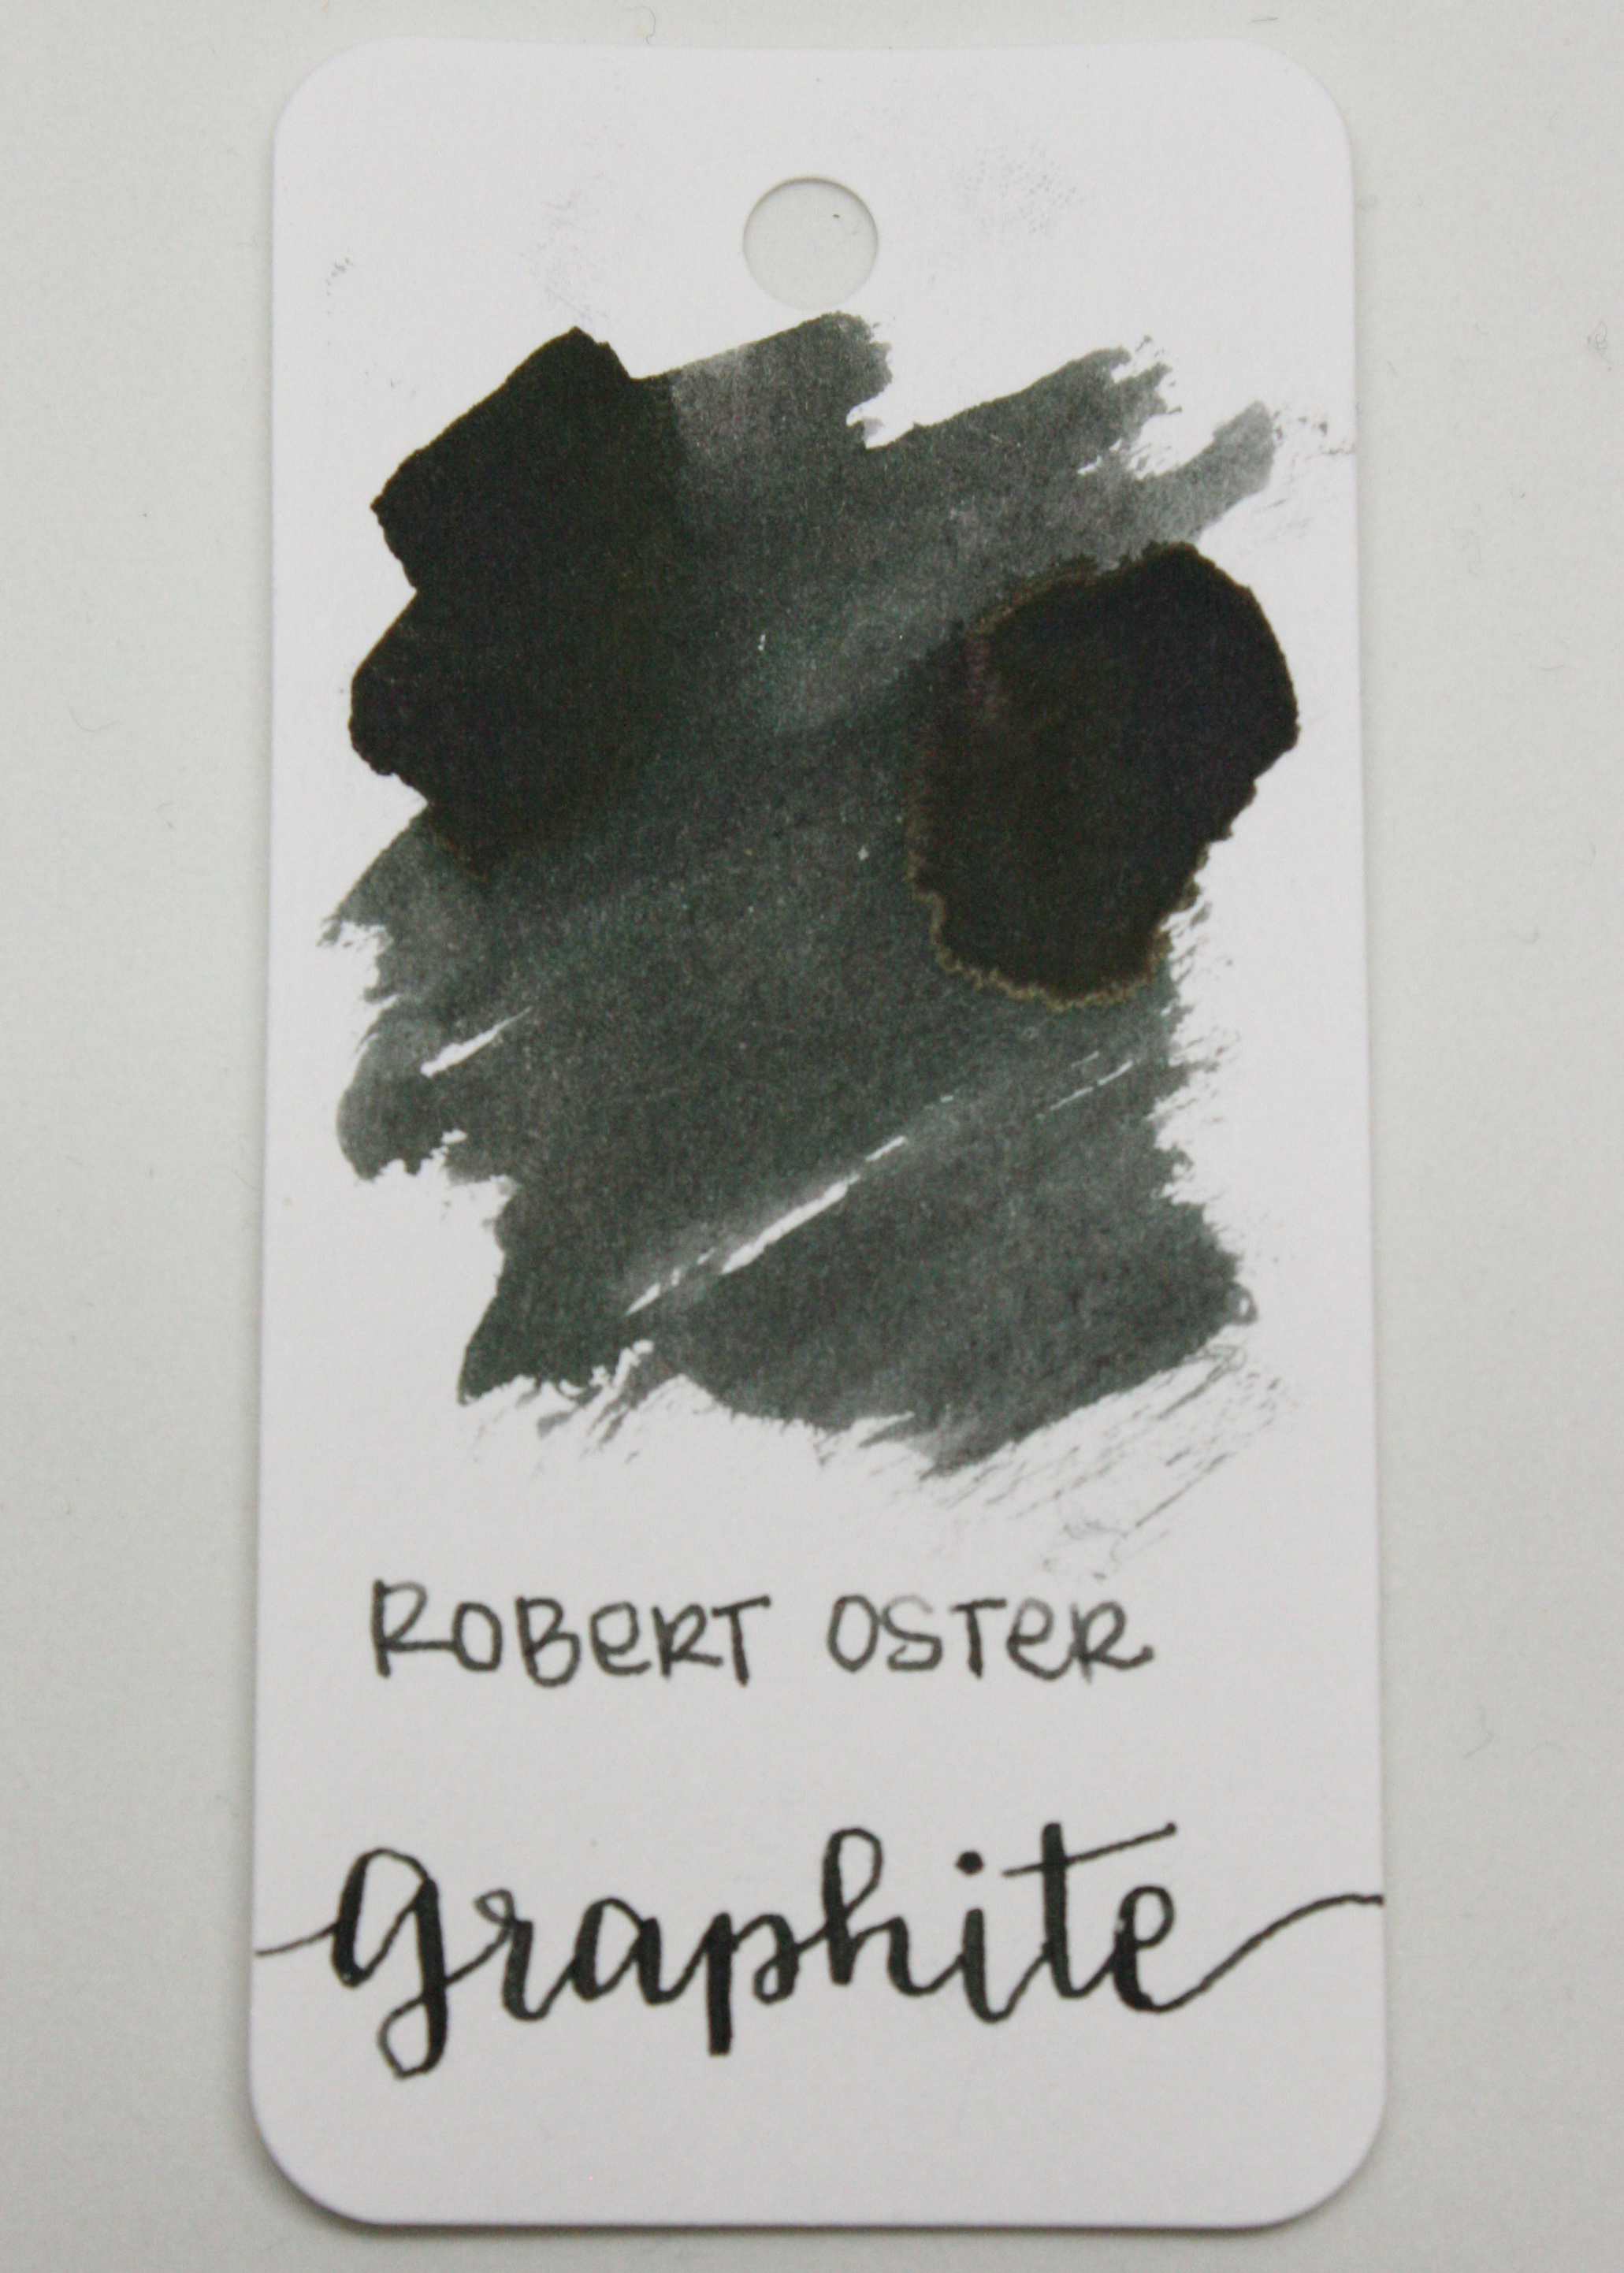 The color... - Graphite is a dark grey with a green undertone. I would call this ink a neutral, and suitable for the office.